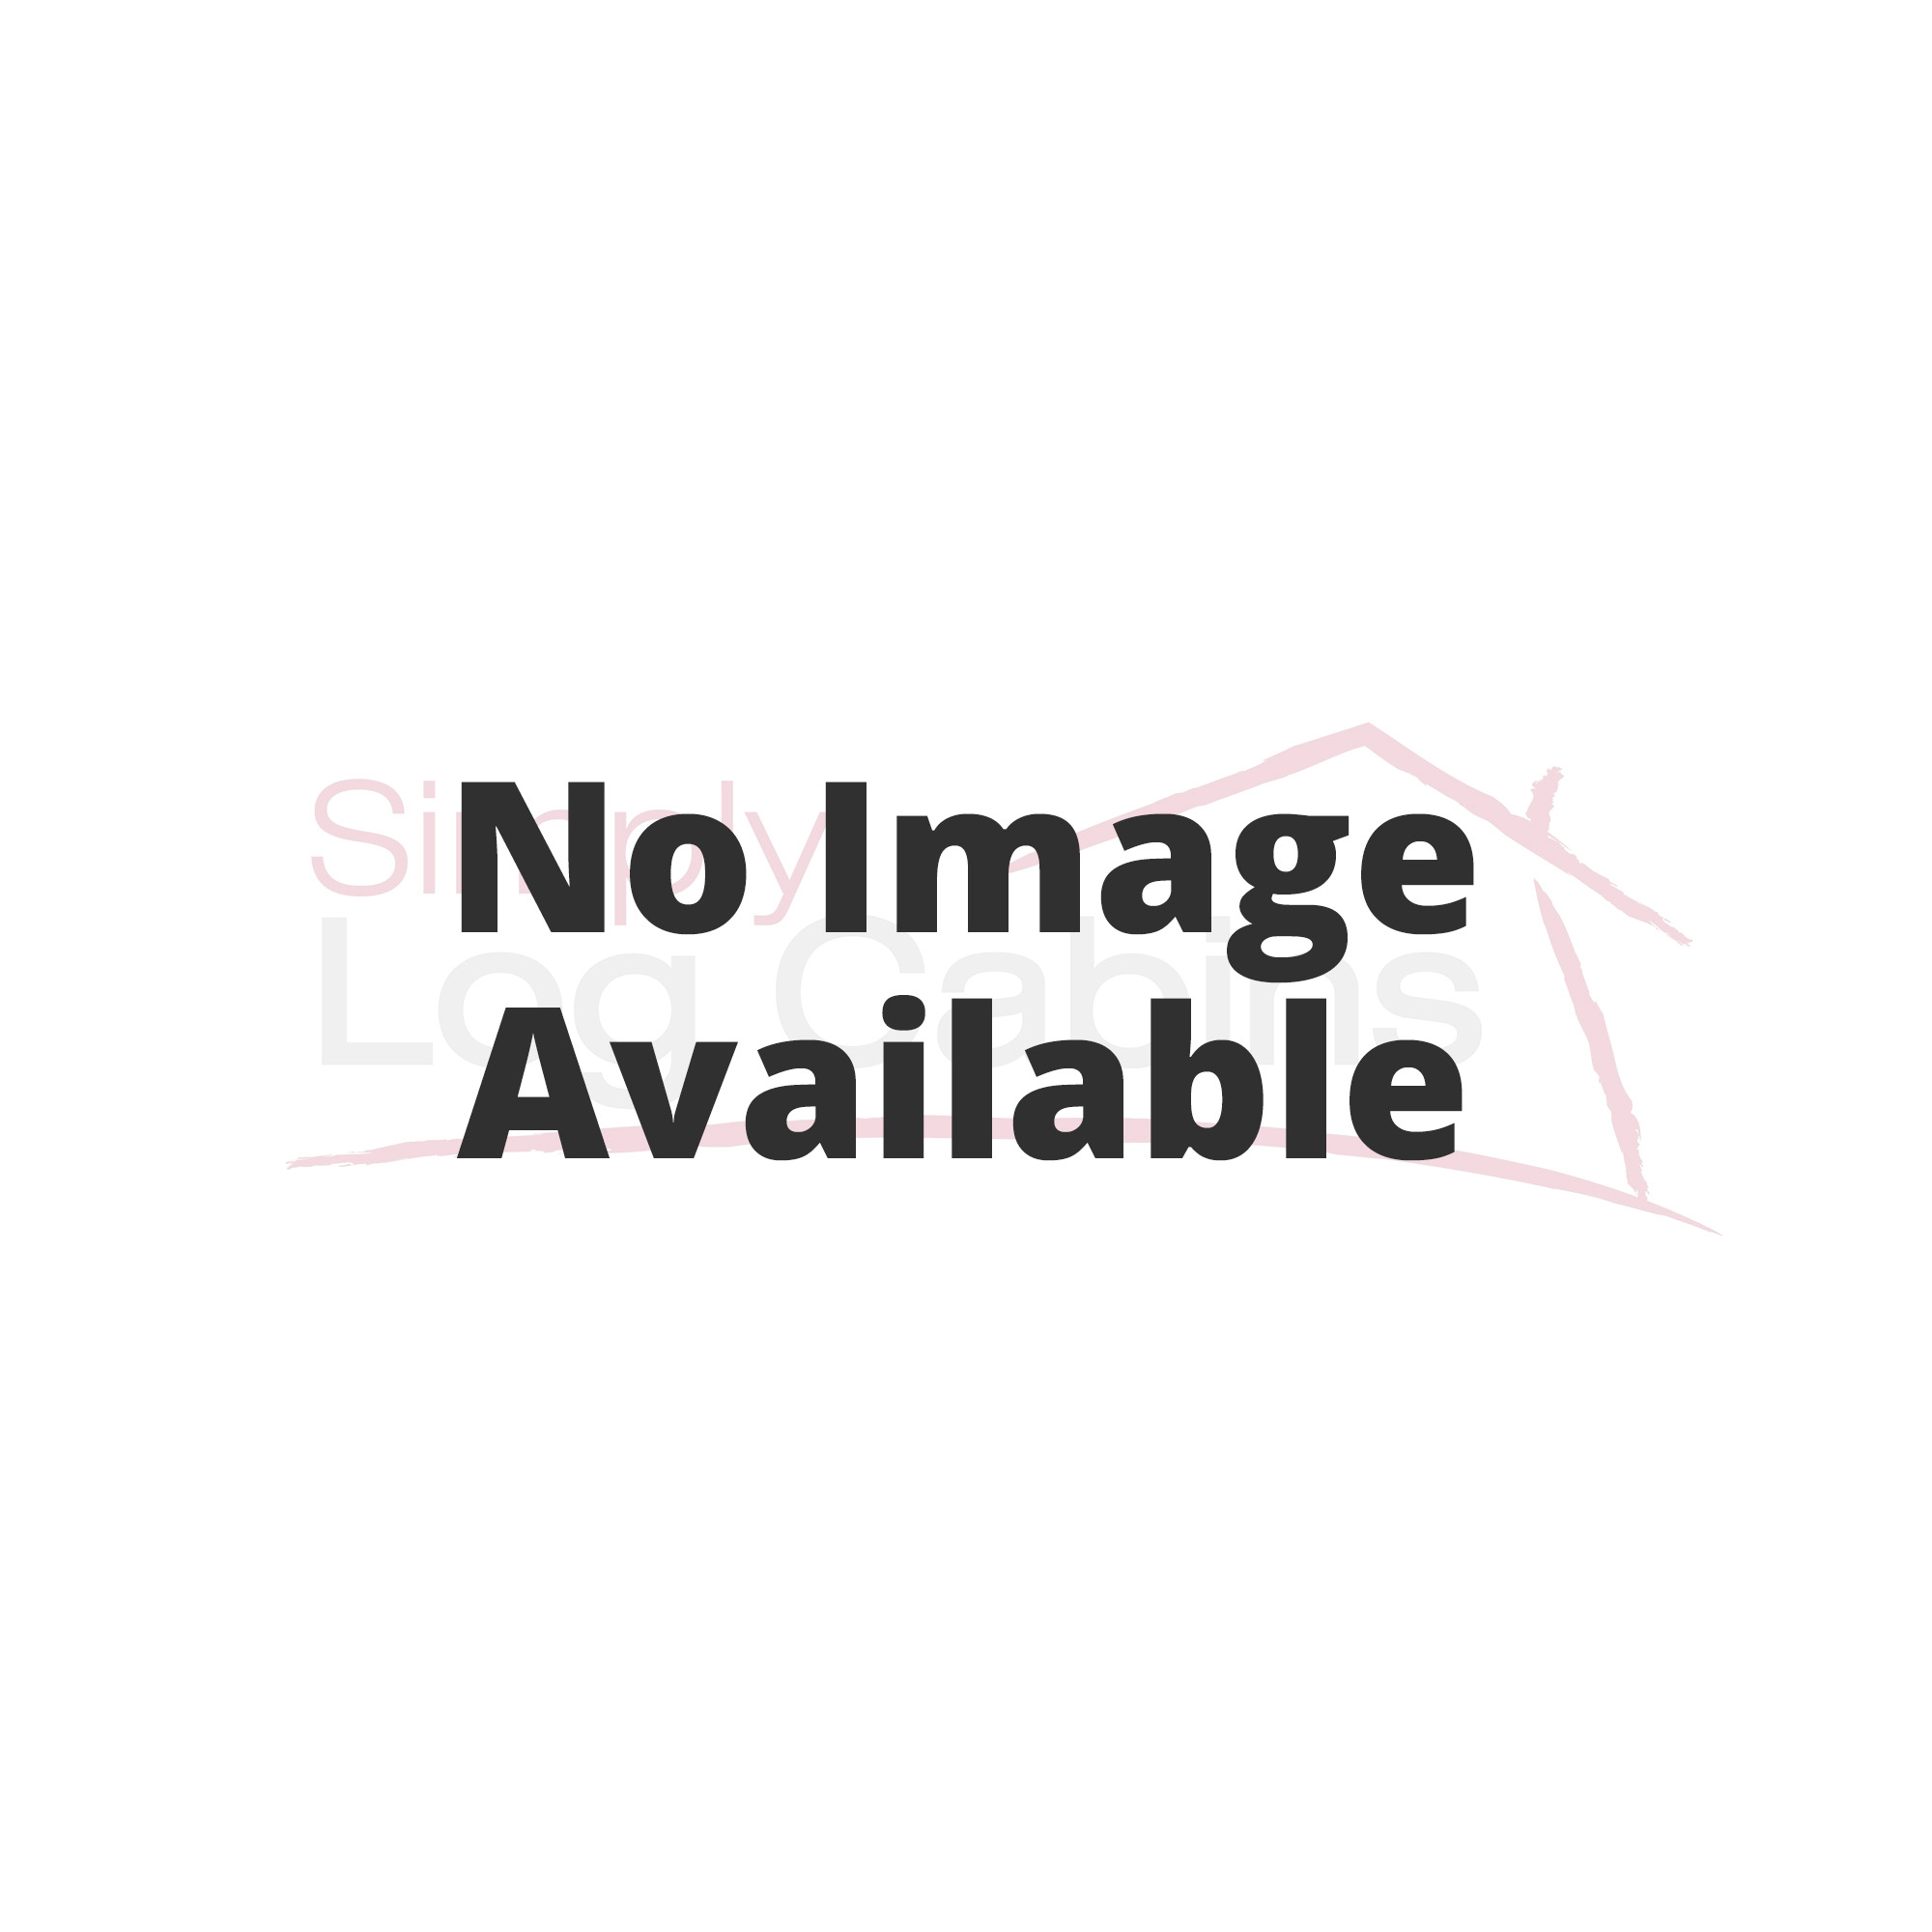 Gudrum richard 1 carport featuring arched posts and roofing material - Plan carport 2 voitures pdf ...